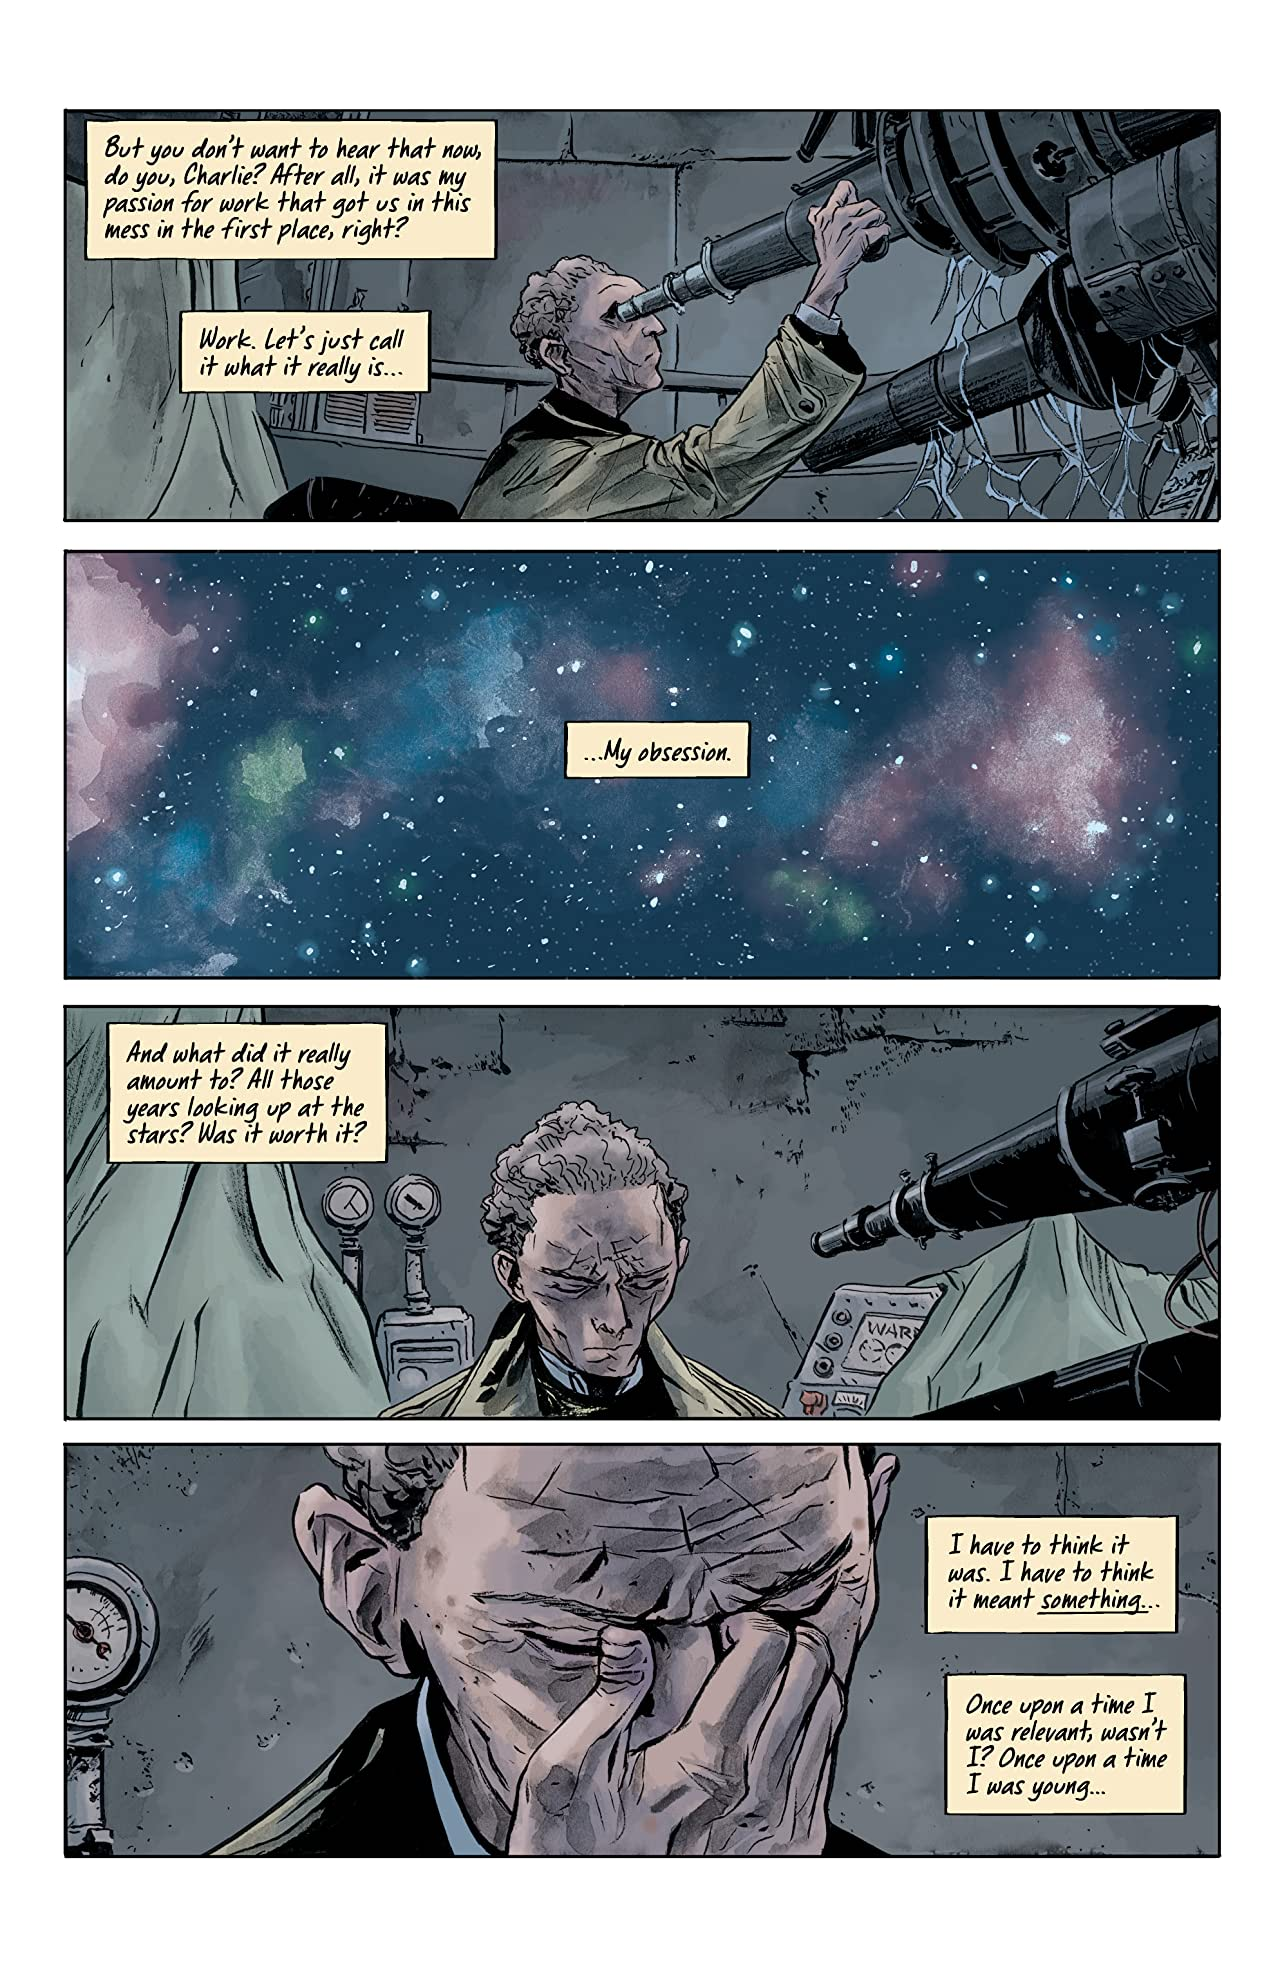 Doctor Star and the Kingdom of Lost Tomorrows: From the World of Black Hammer #1